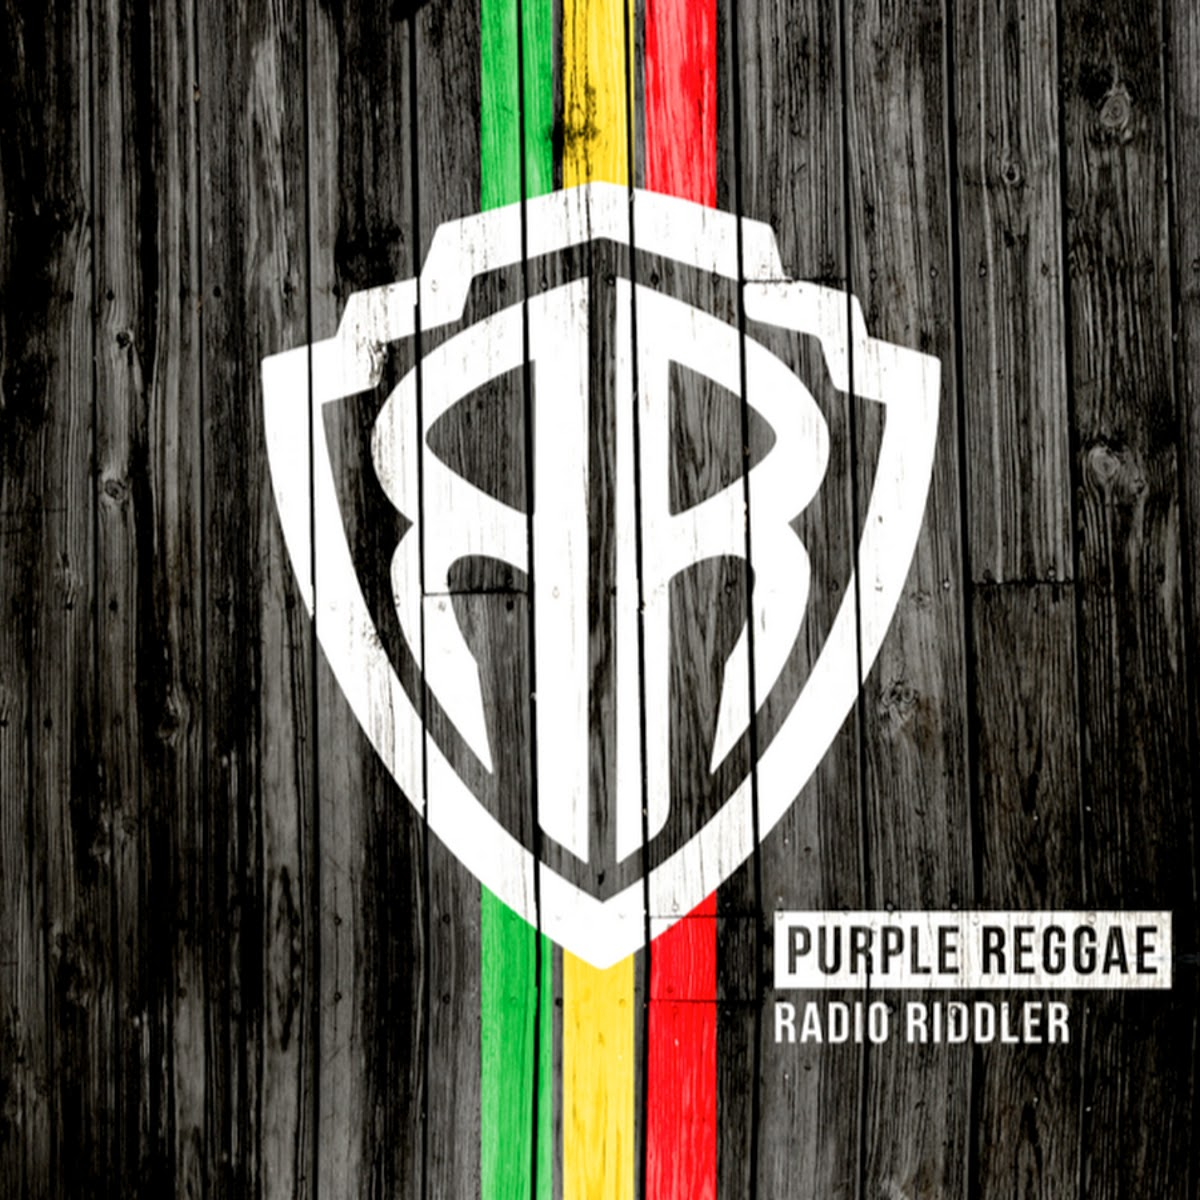 http://www.d4am.net/2014/10/radio-riddler-purple-reggae.html